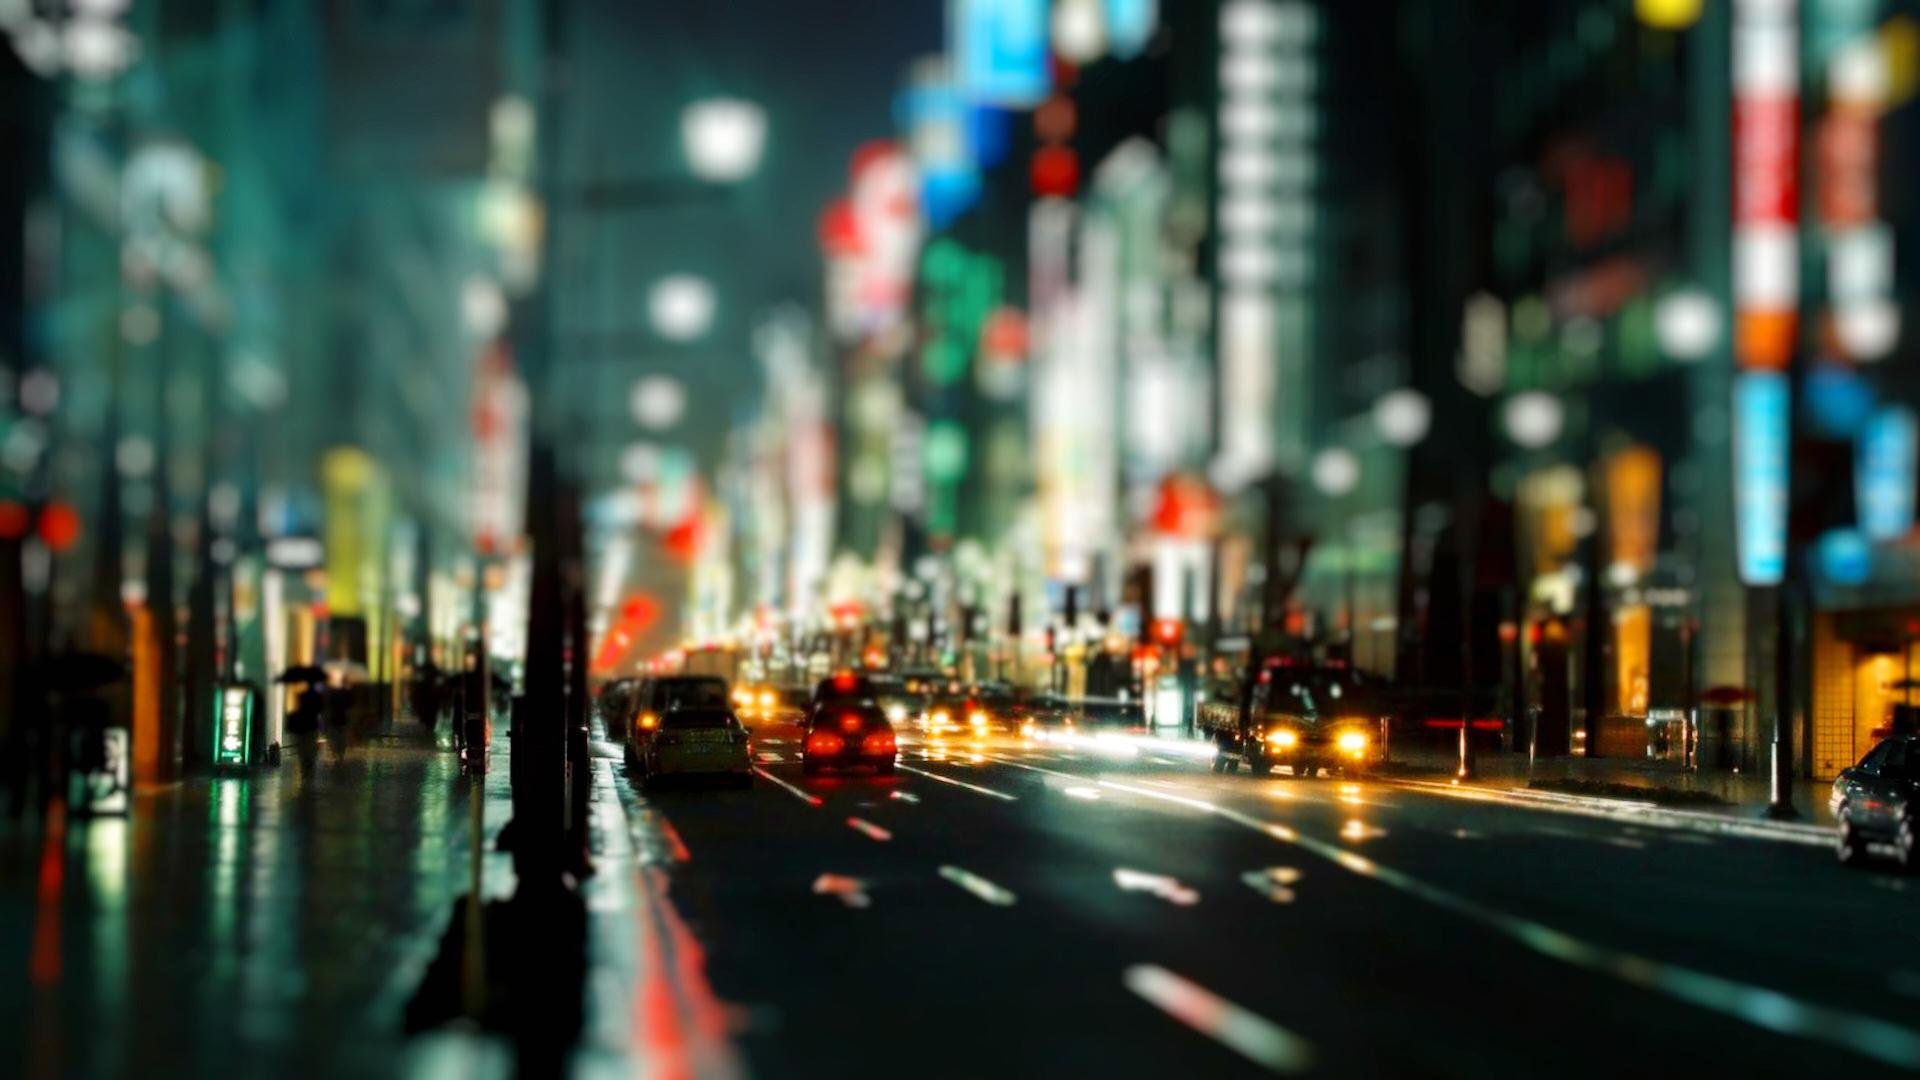 Wallpaperwiki Night City Wallpaper Blurry Cityscape Rain Unsharp